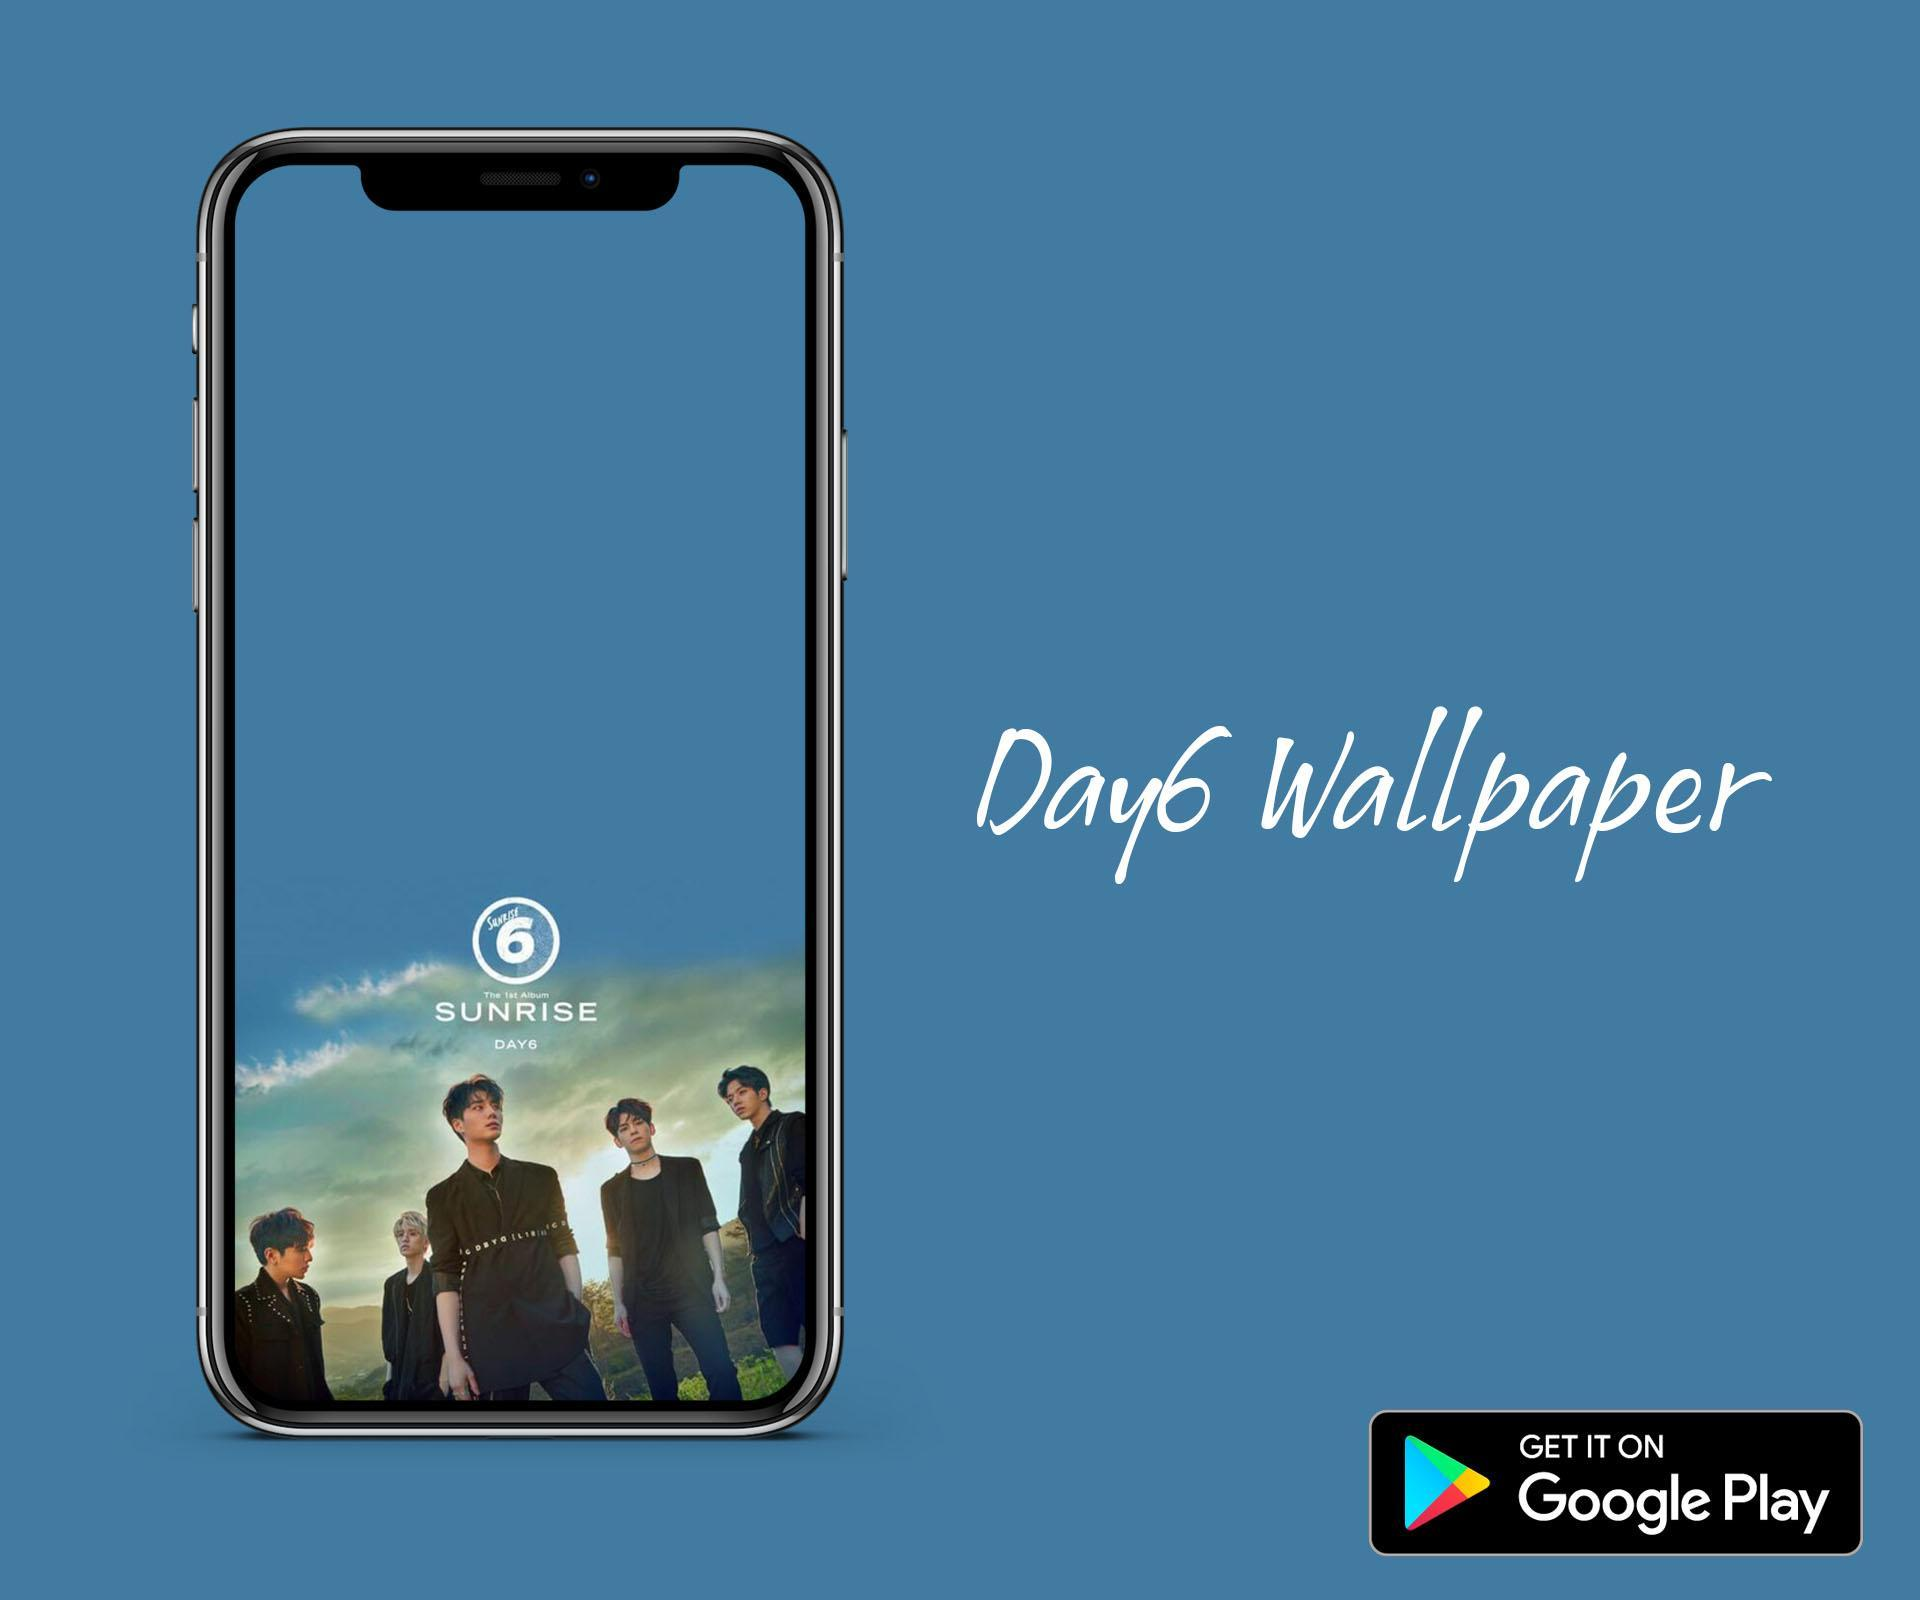 Day6 Wallpaper KPOP HD 2019 for Android - APK Download